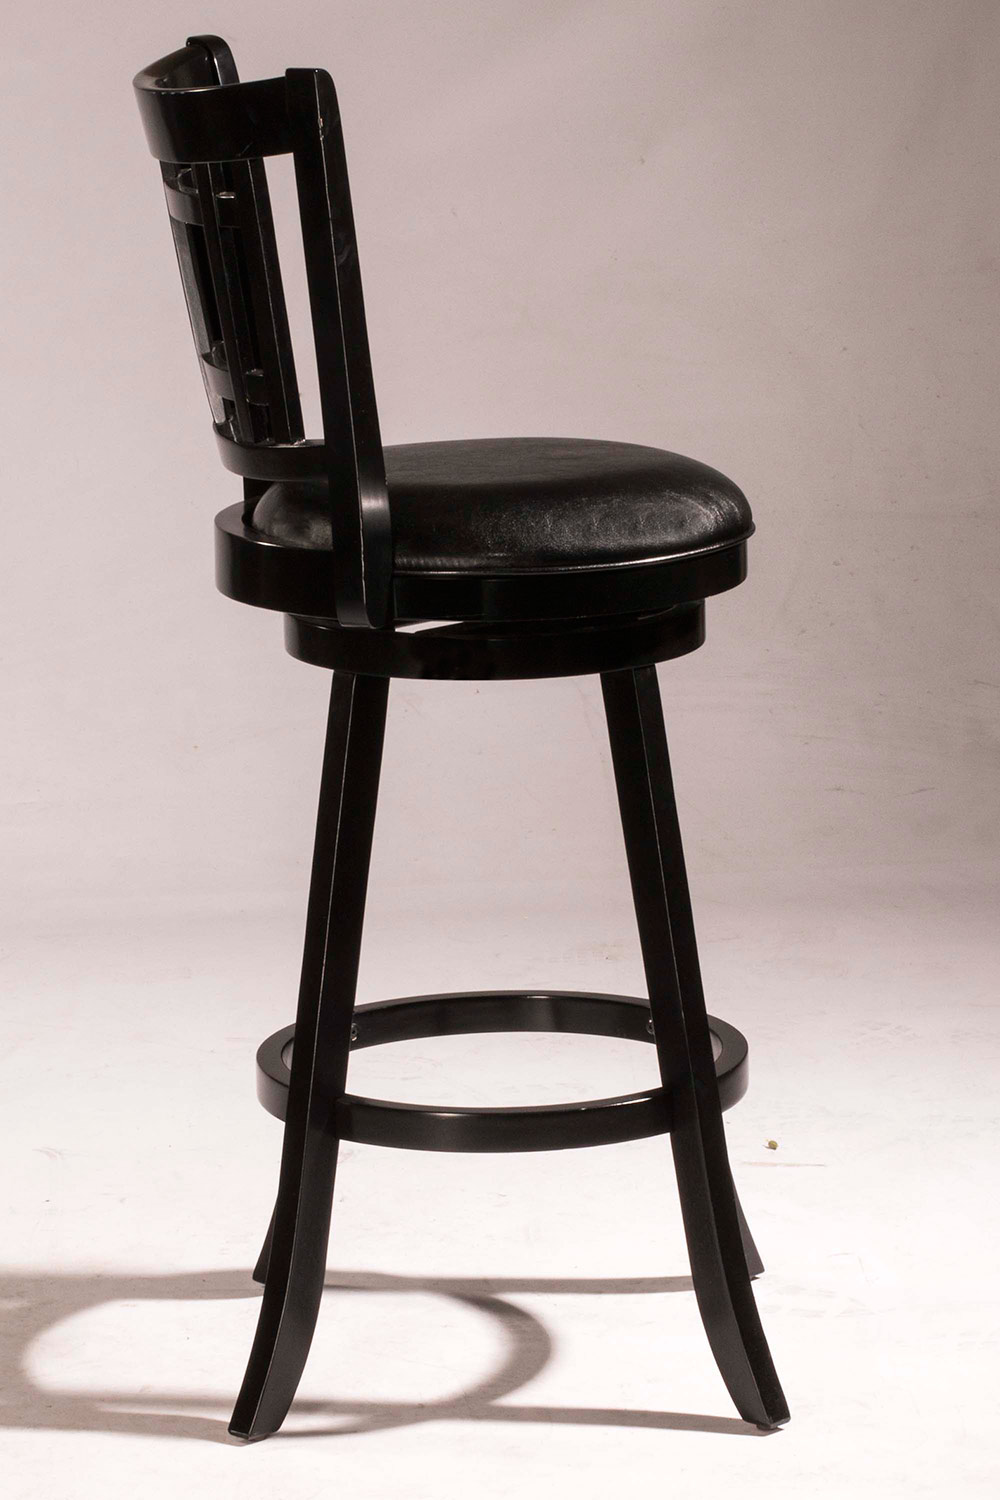 Hillsdale Fairfox Swivel Bar Stool - Black Faux Leather